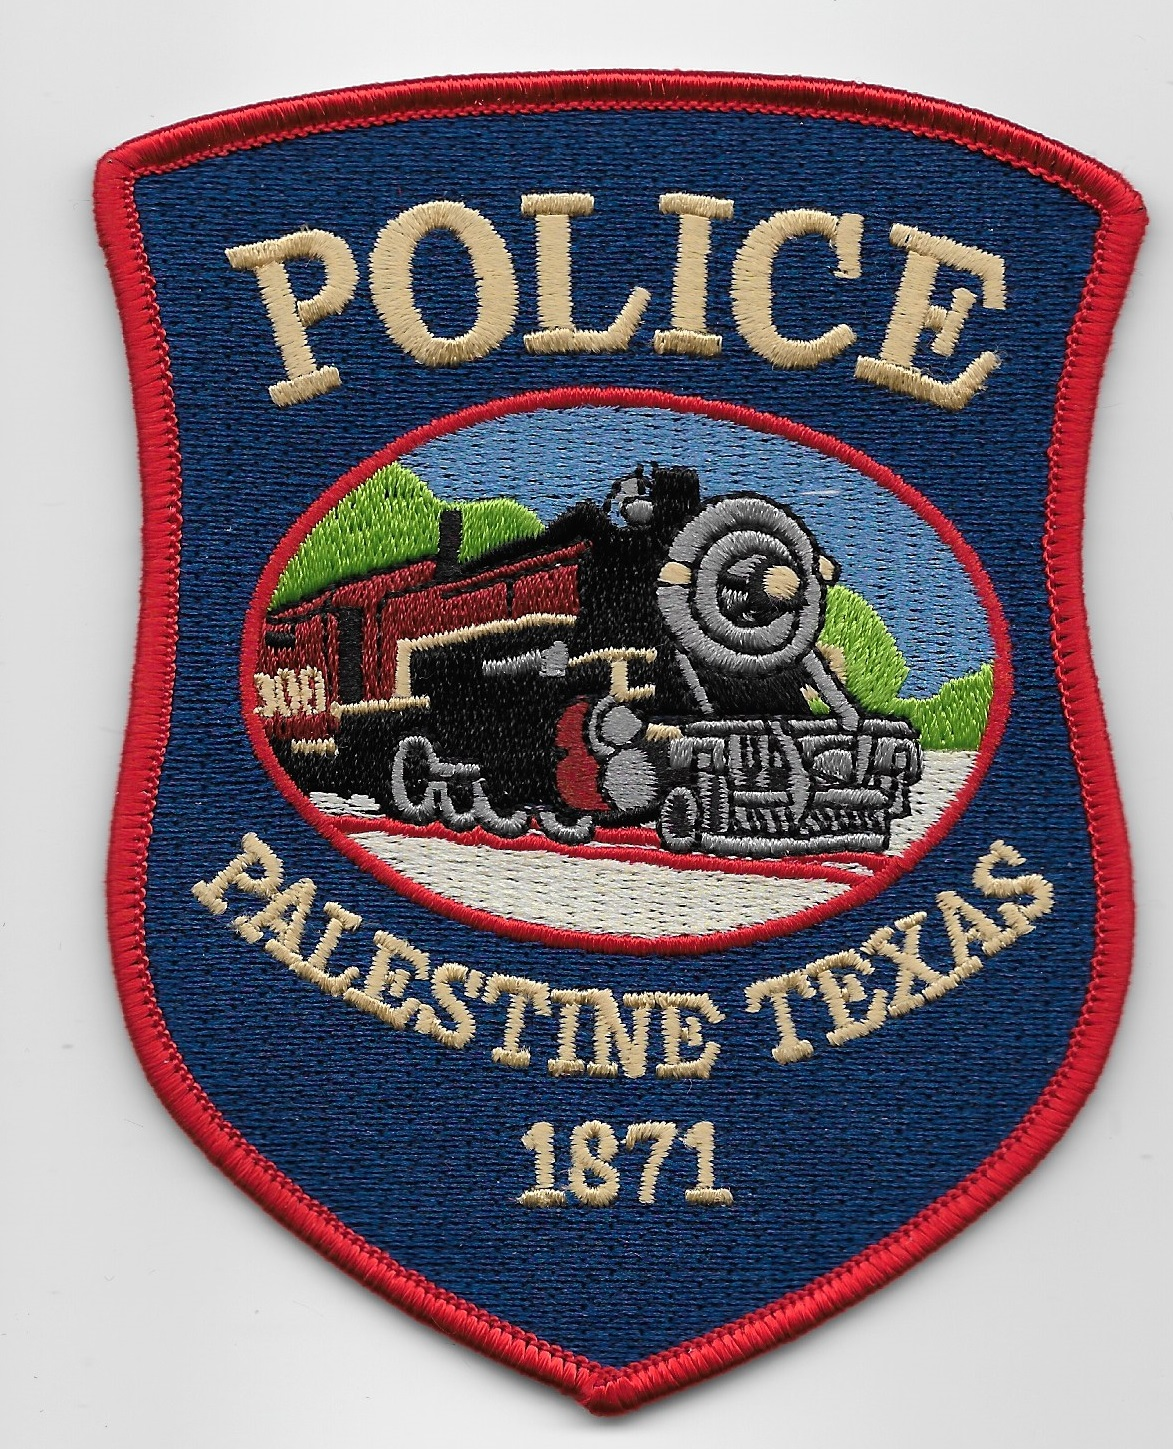 Palestine Police State Texas TX Train patch